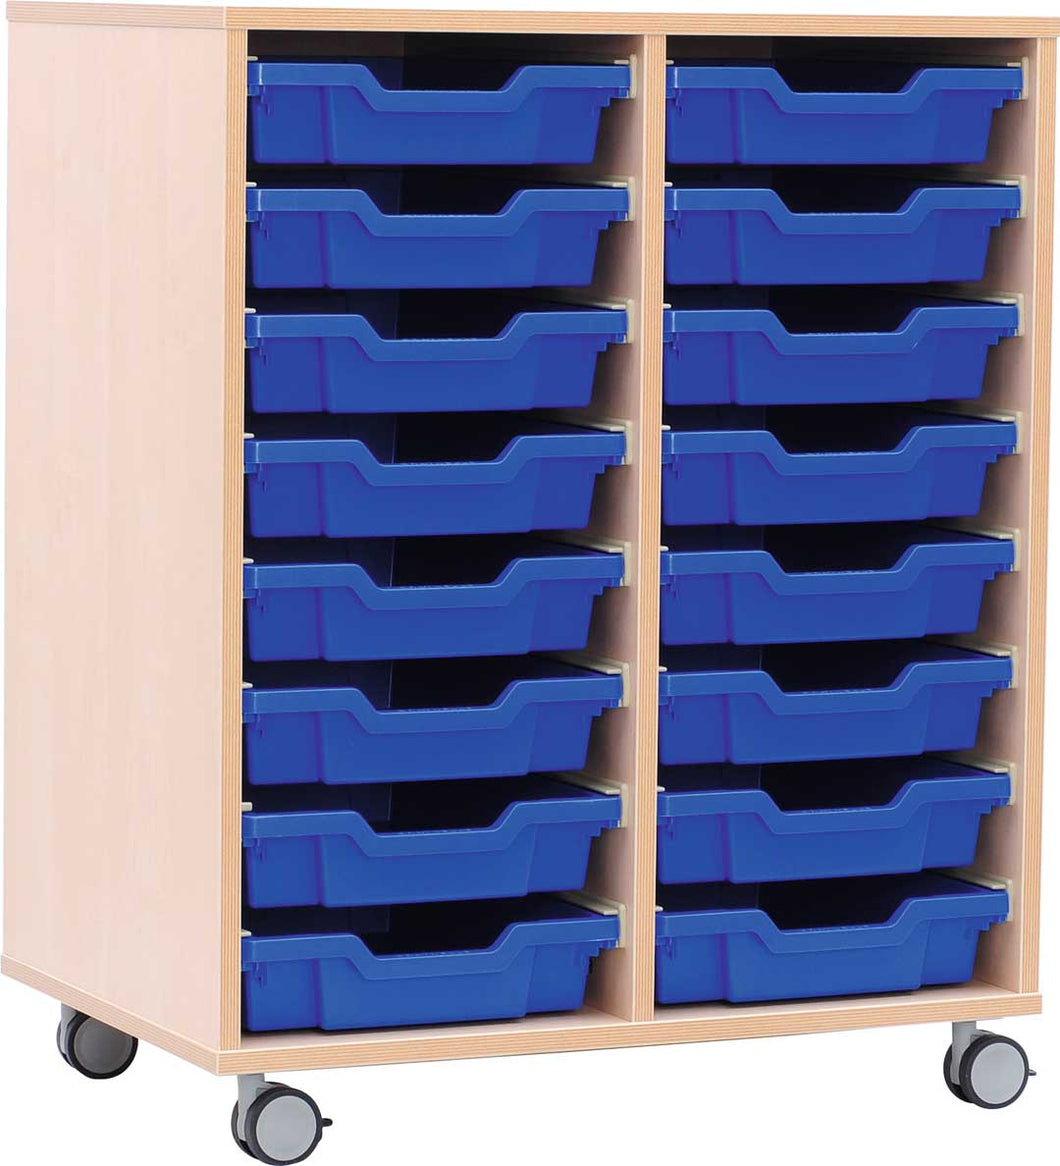 M Cabinets for Plastic Containers 2 Rows with Castors